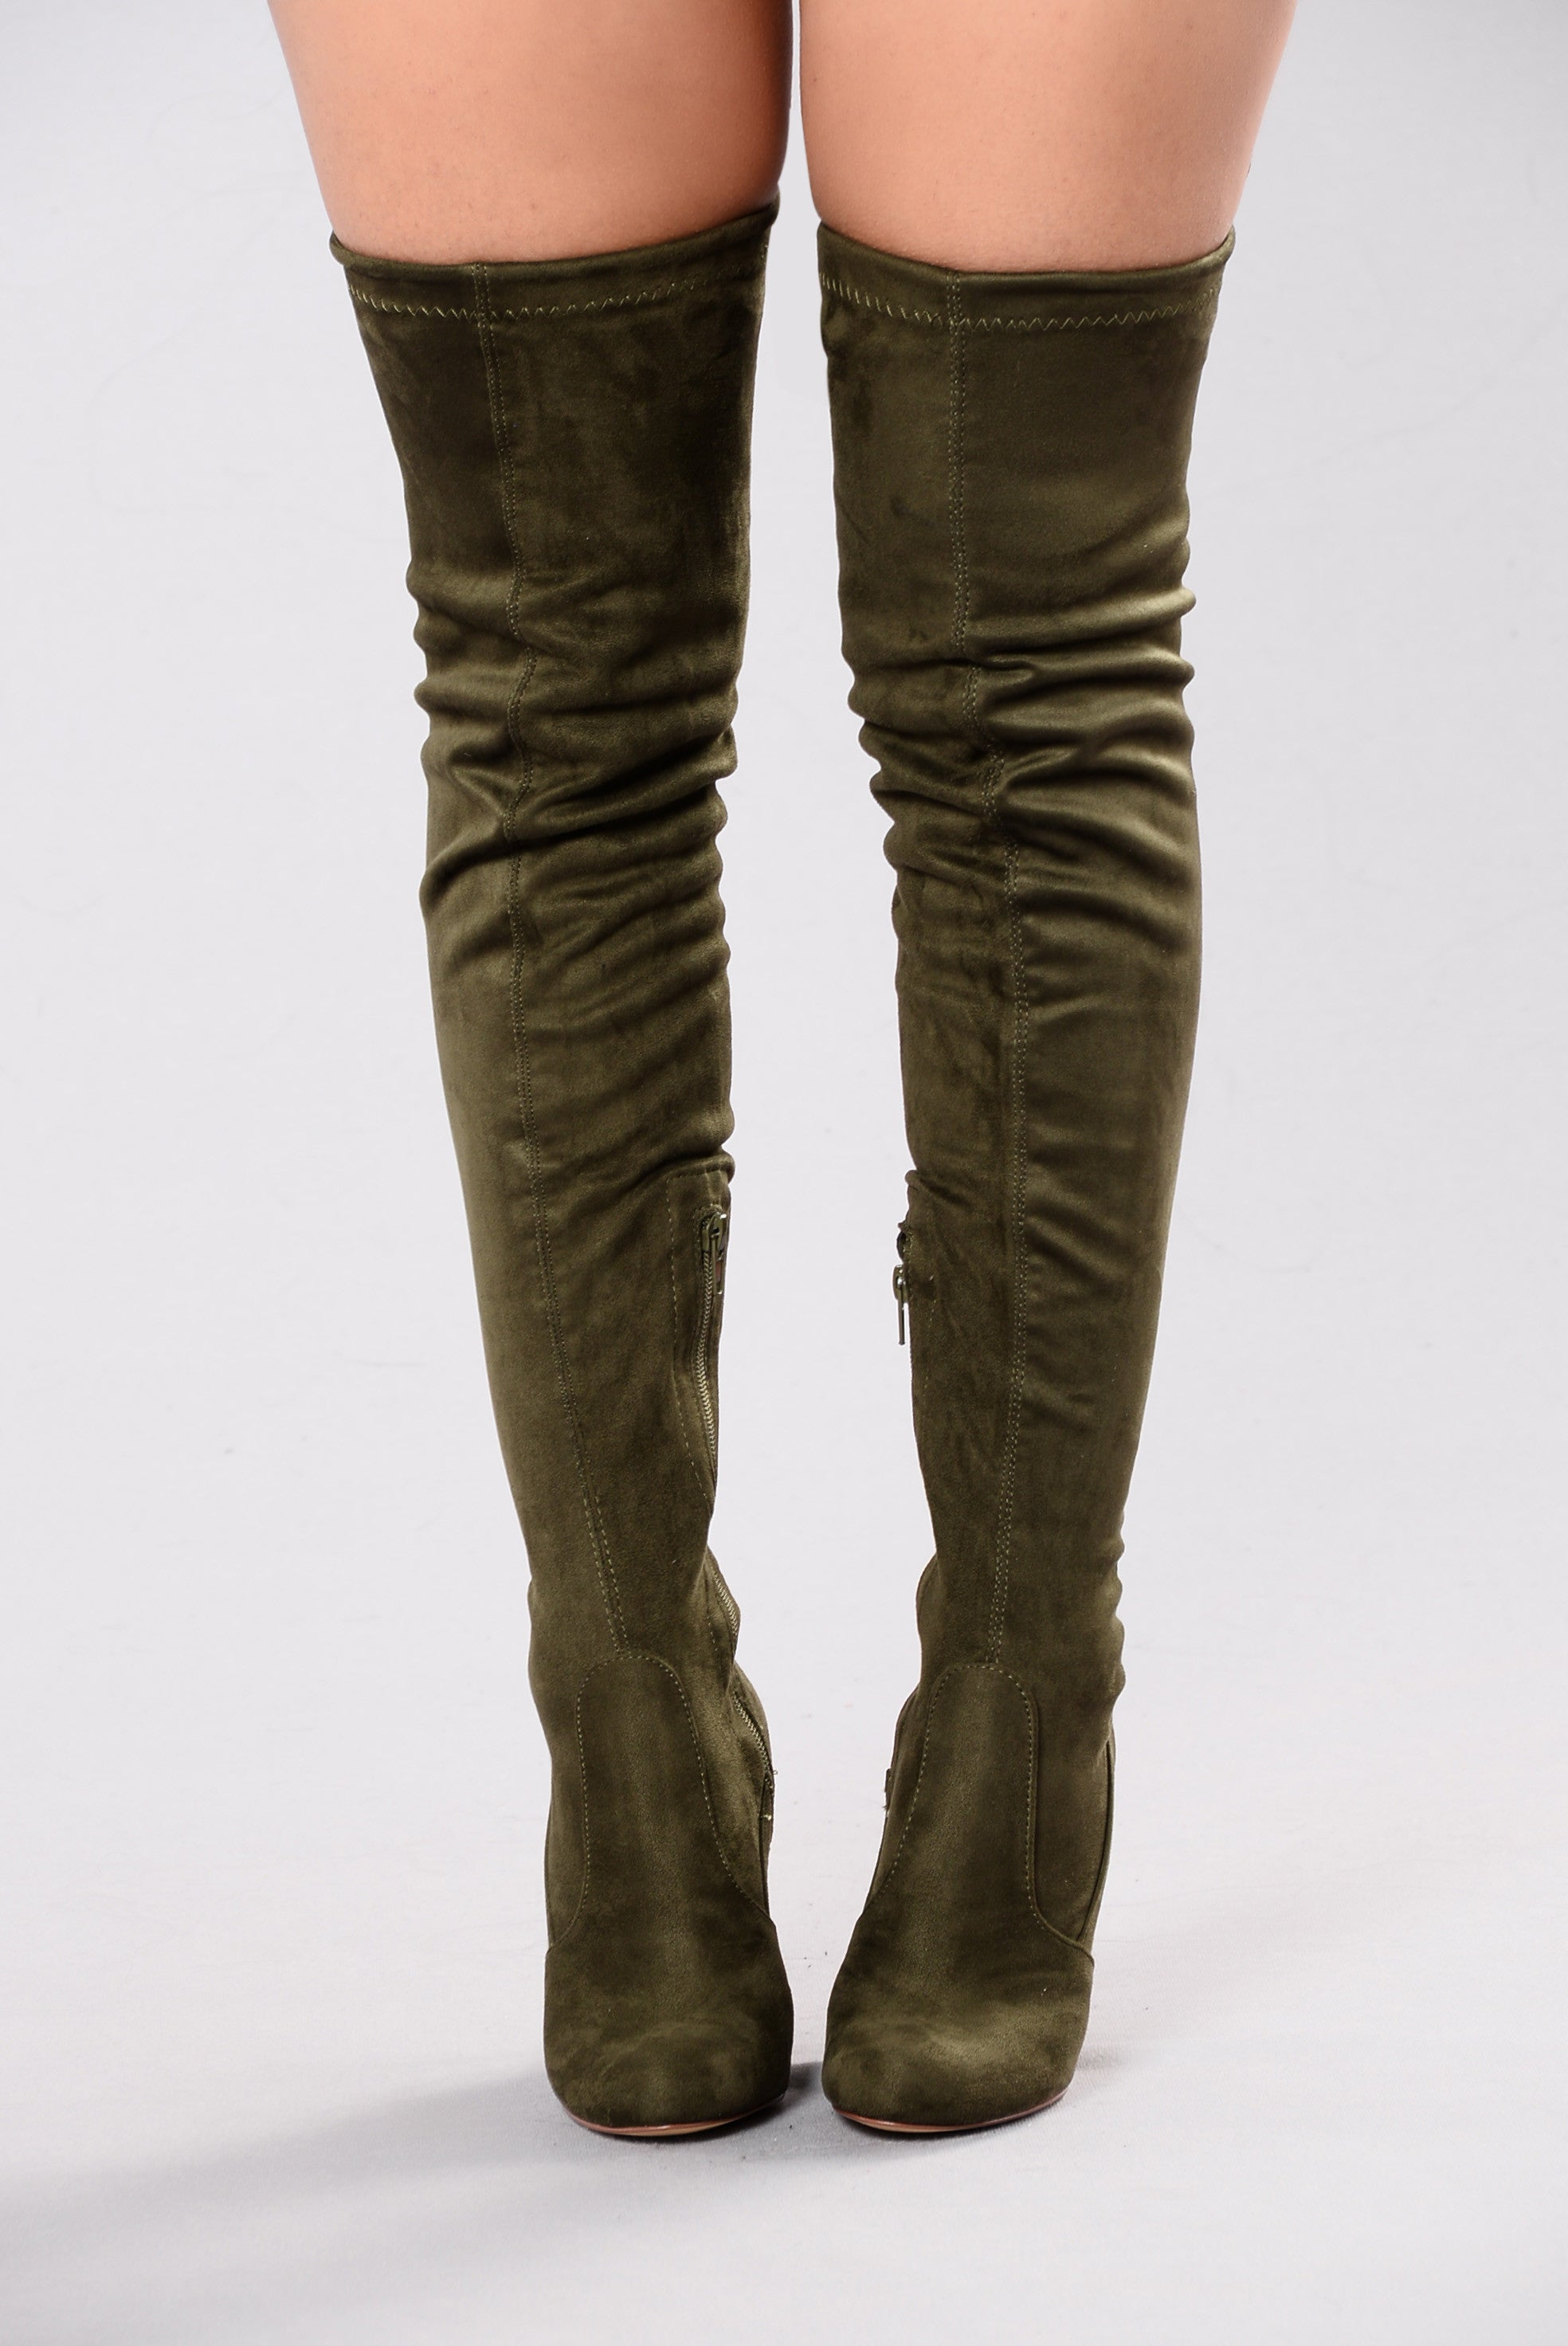 best fashion thigh high boots plus size legs